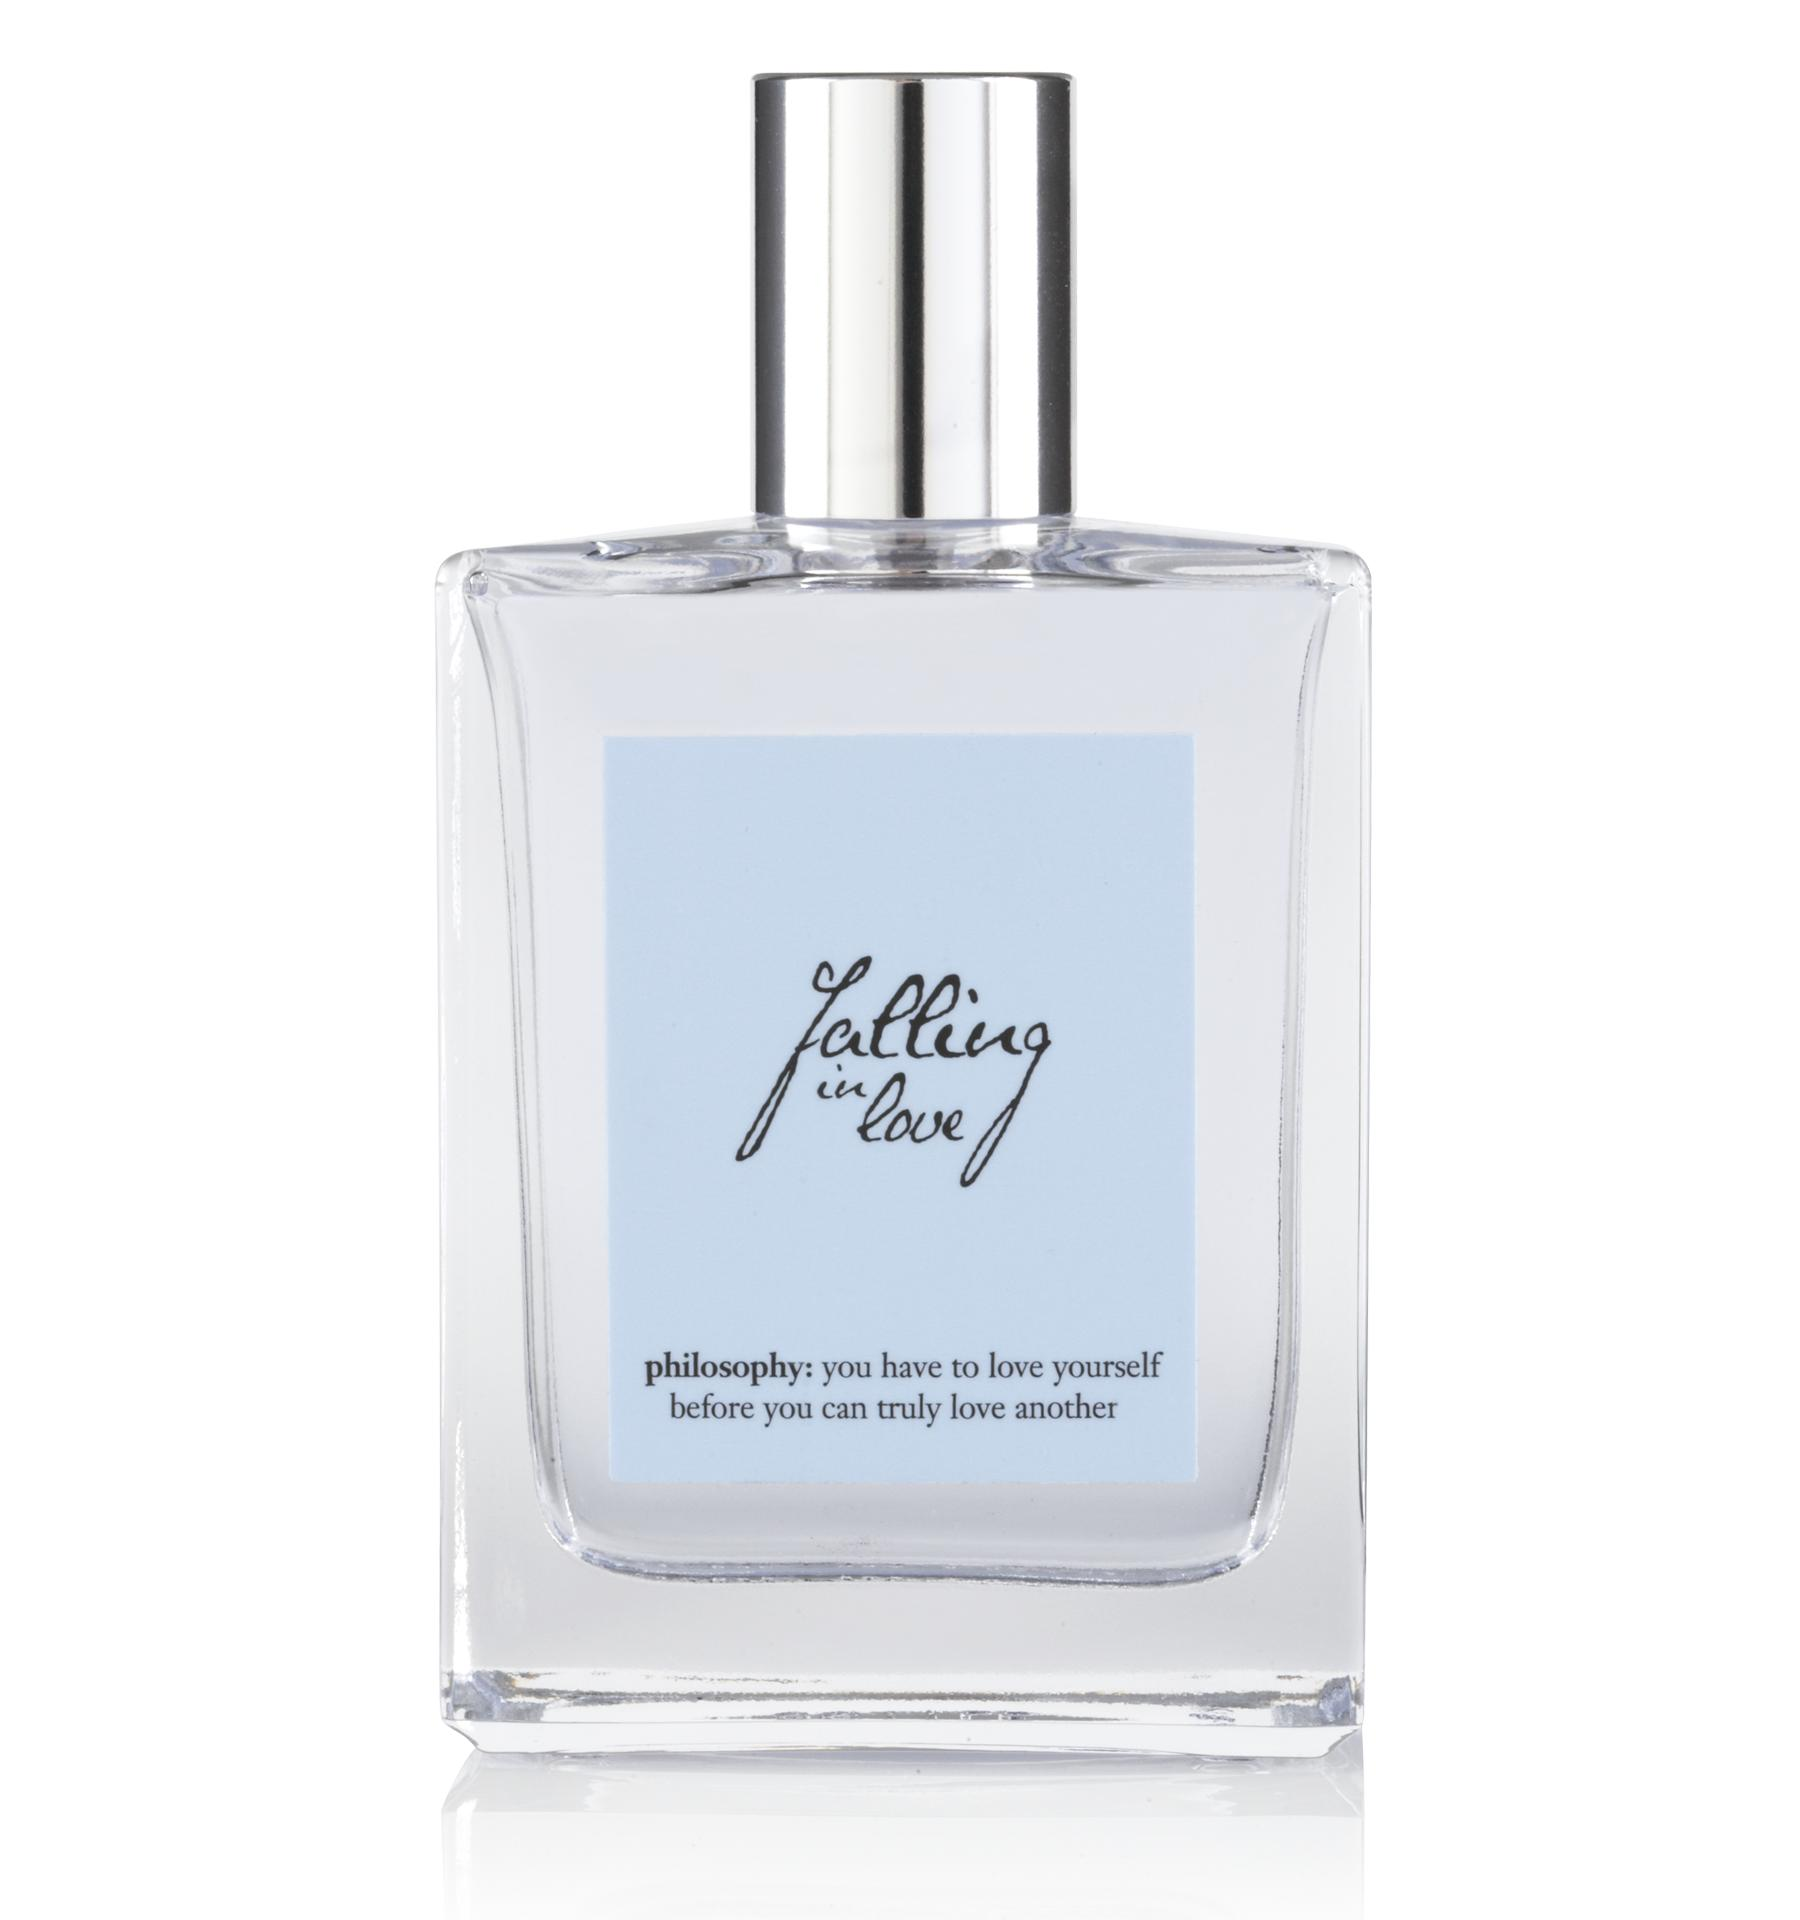 philosophy, falling in love spray fragrance